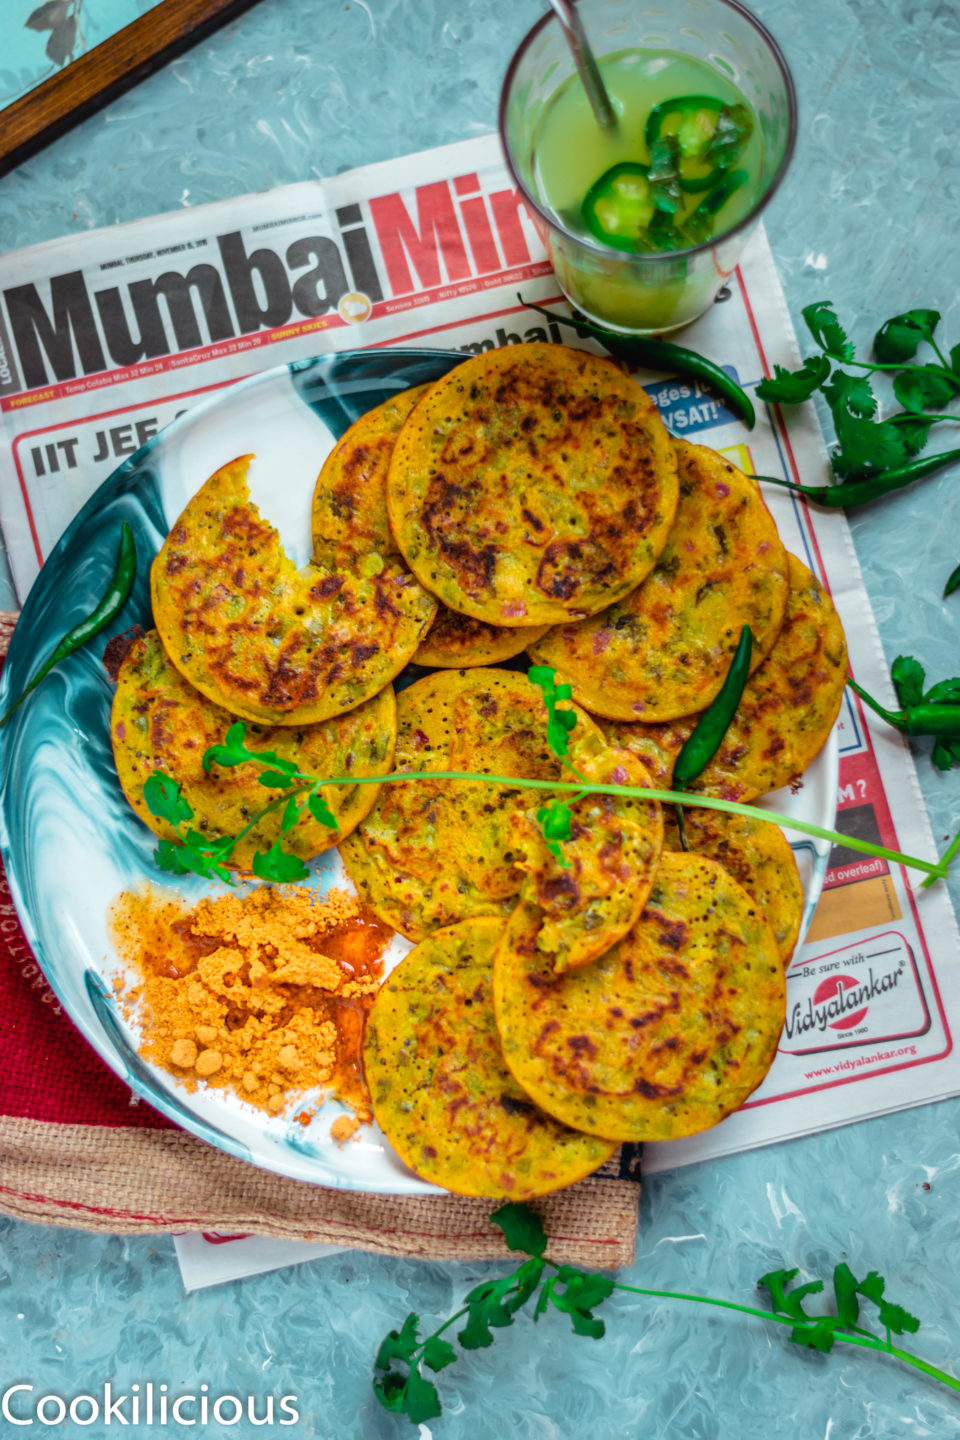 flat lay image of Mini Masala Uttapam on a plate placed over a newspaper